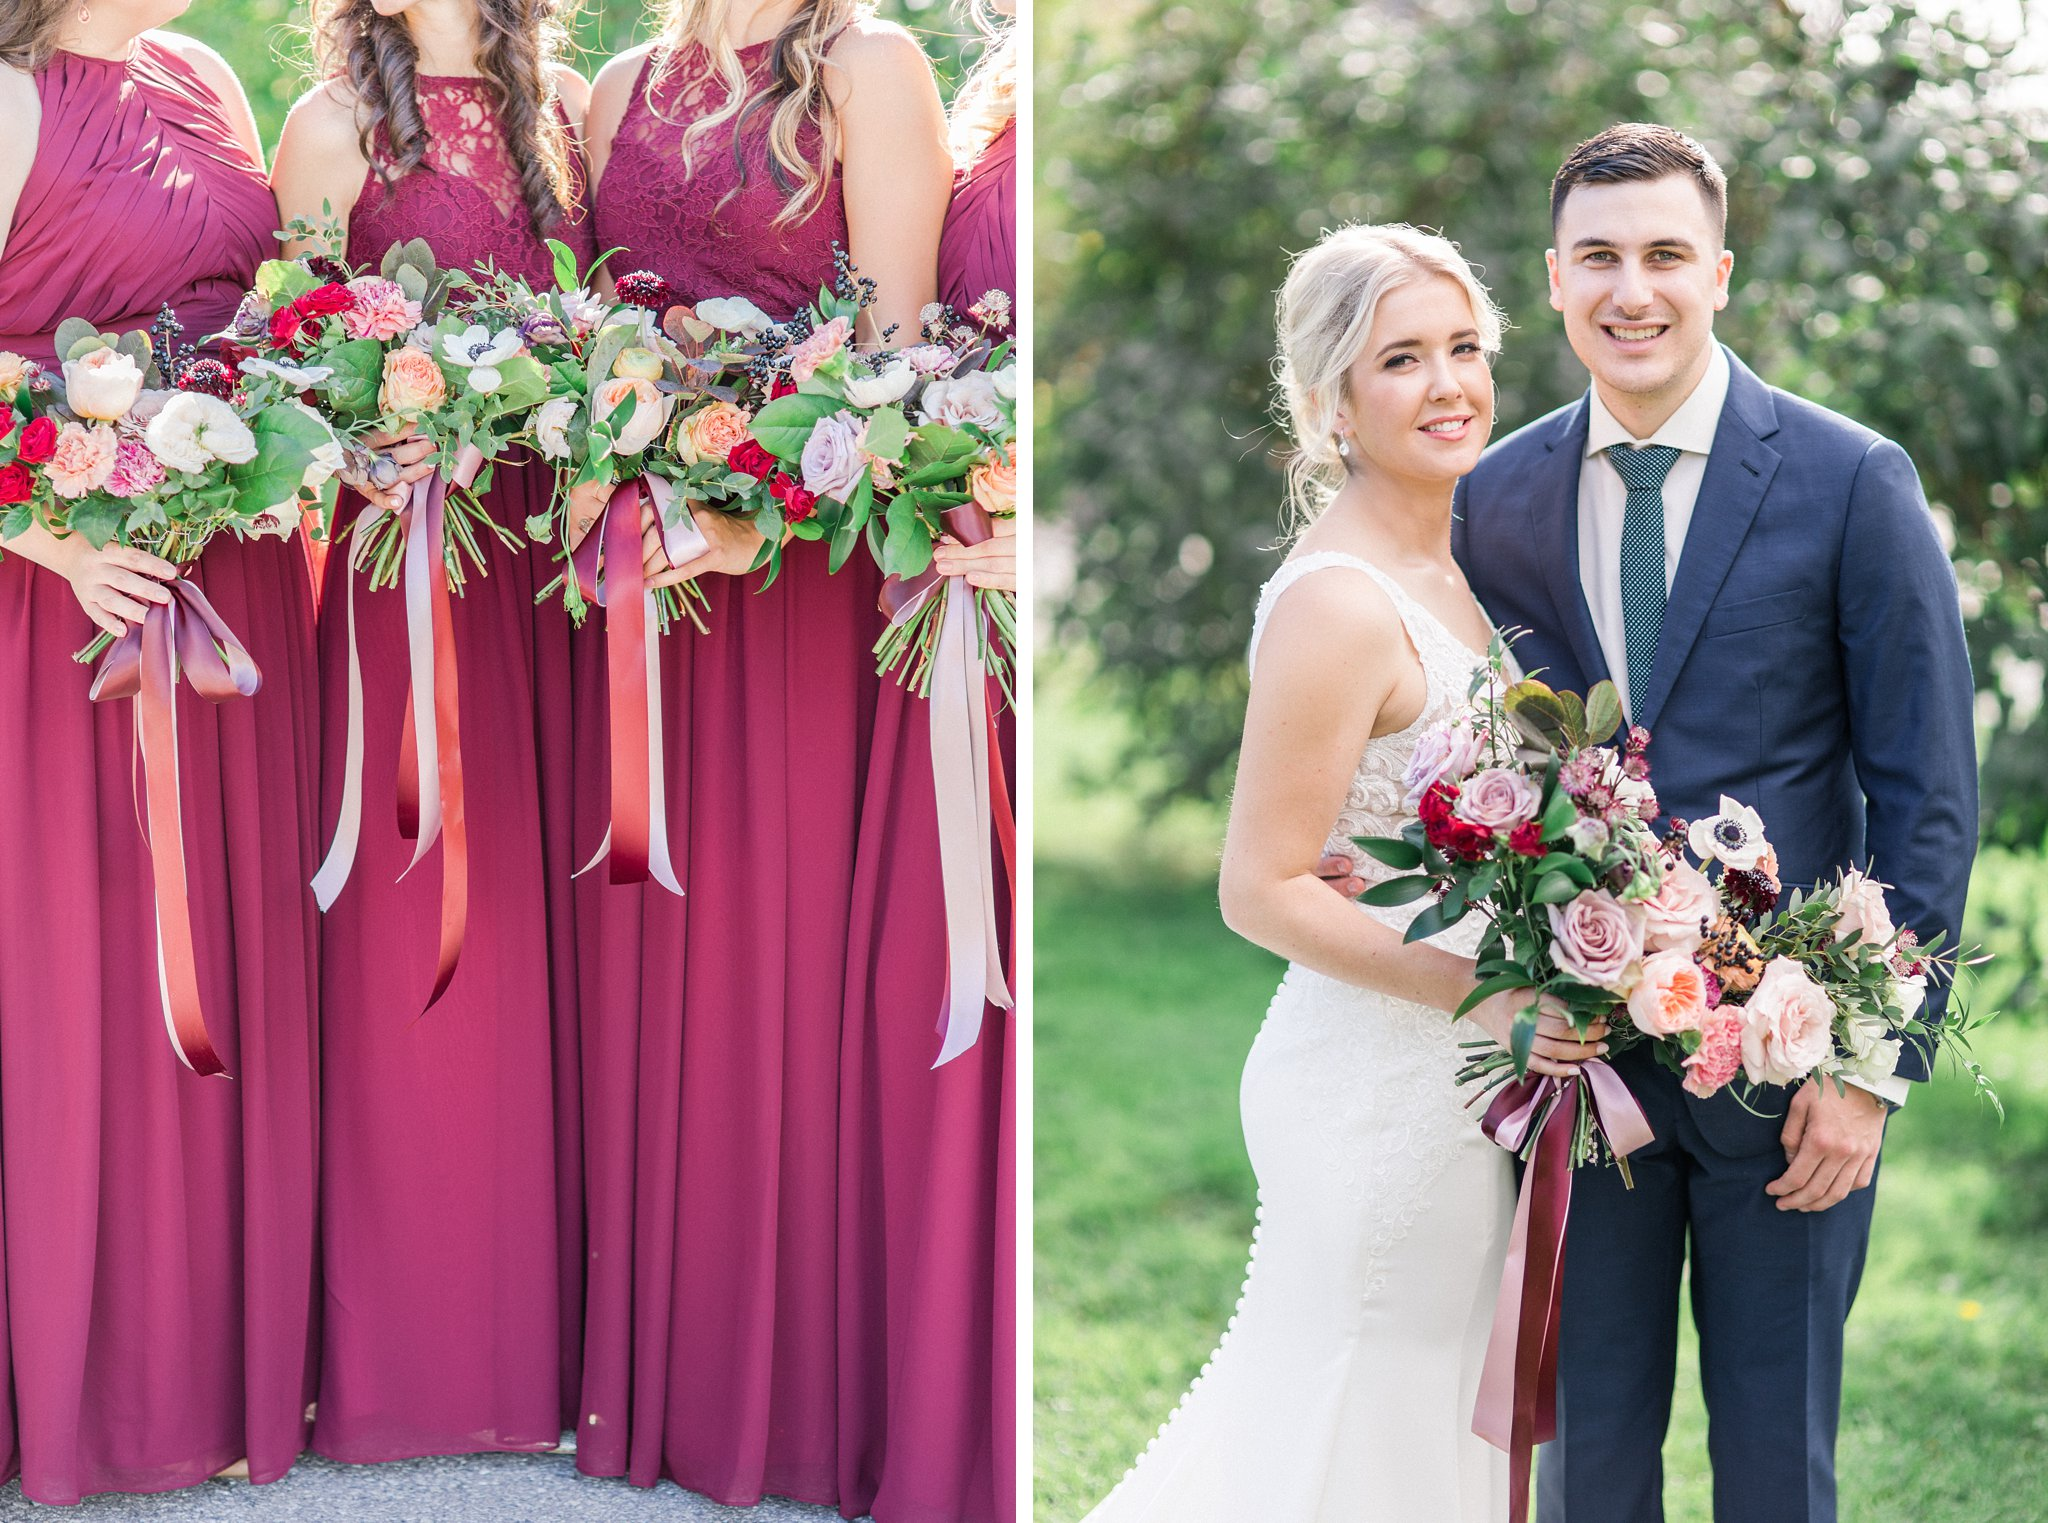 Cranberry dresses Ottawa restaurant wedding at Sidedoor Restaurant